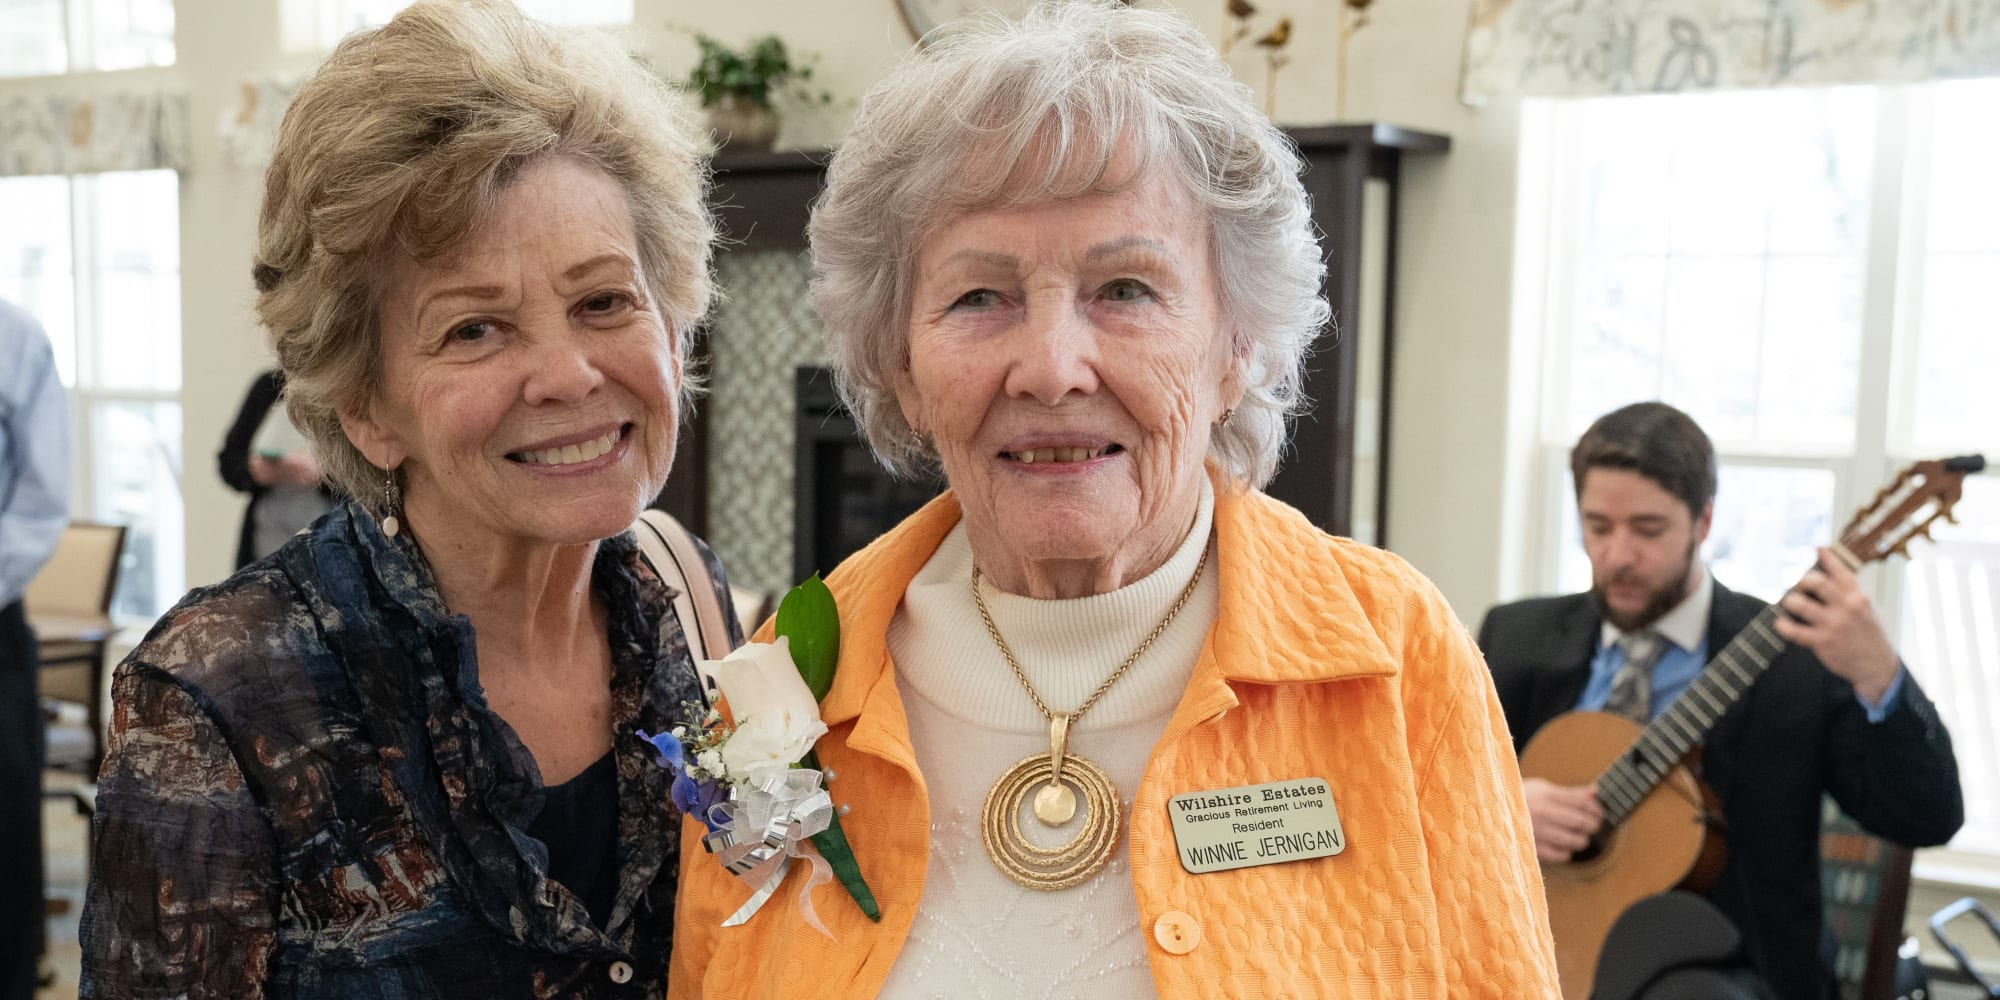 Two residents at Wilshire Estates Gracious Retirement Living in Silver Spring, Maryland